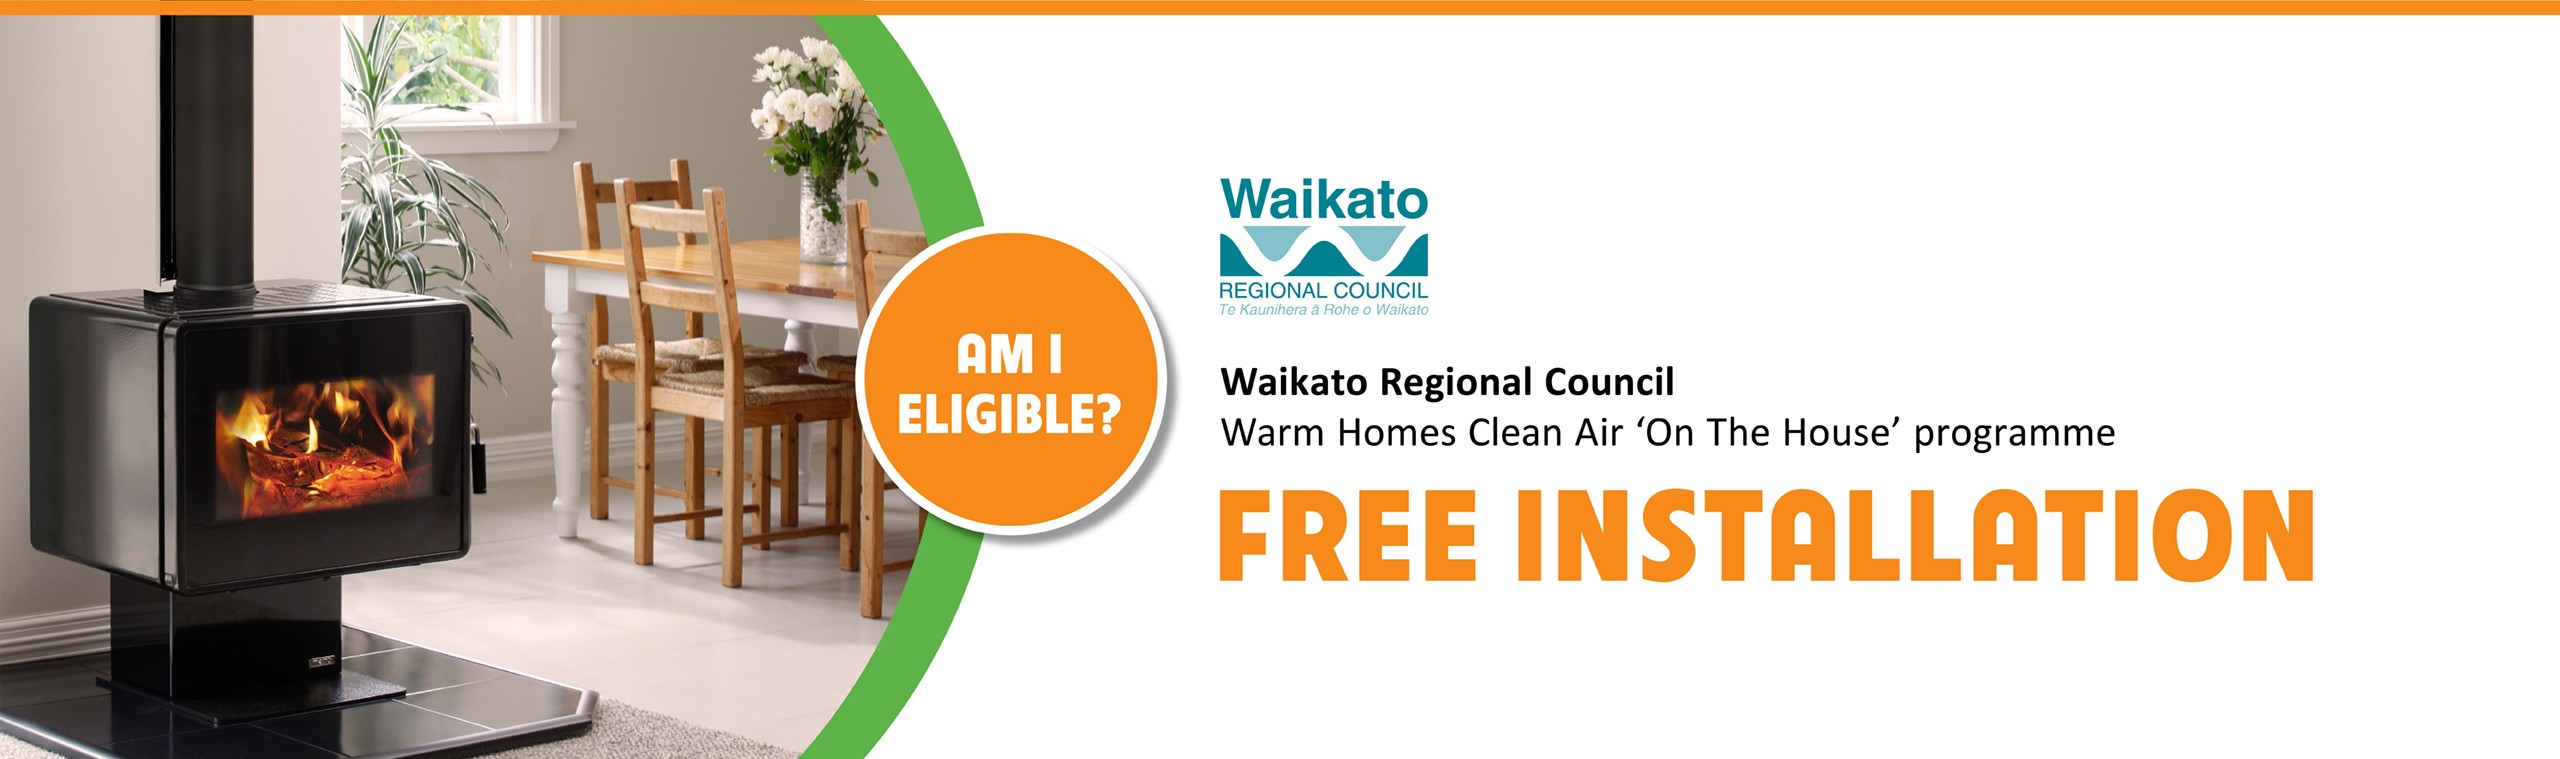 Warm_Homes_Clean_Air_Free_Installation_Banner.jpg